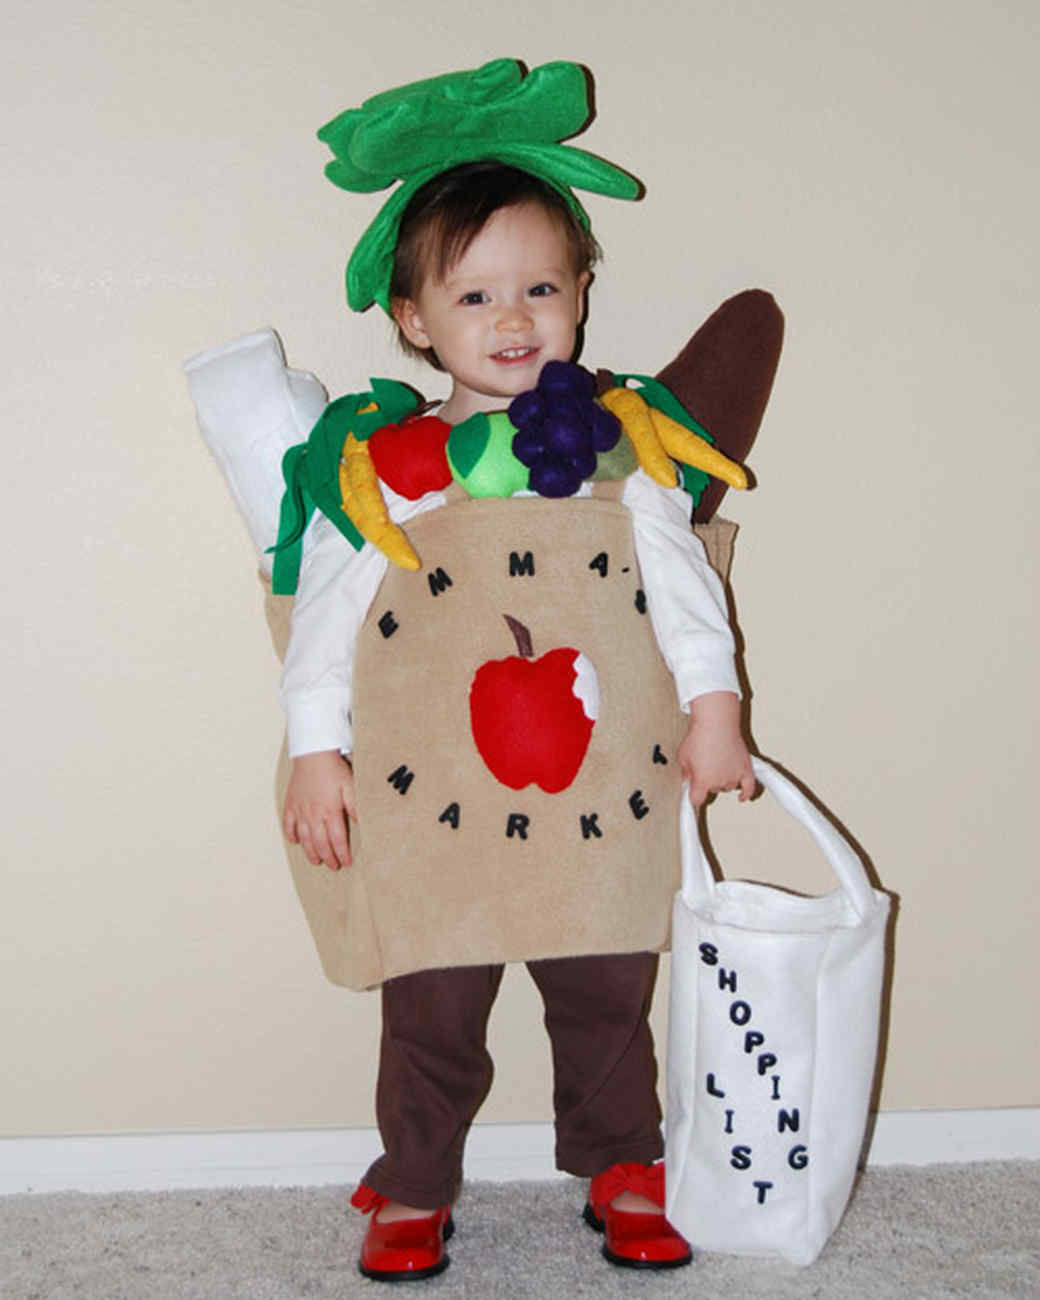 best_of_halloween09_grocery_bag.jpg